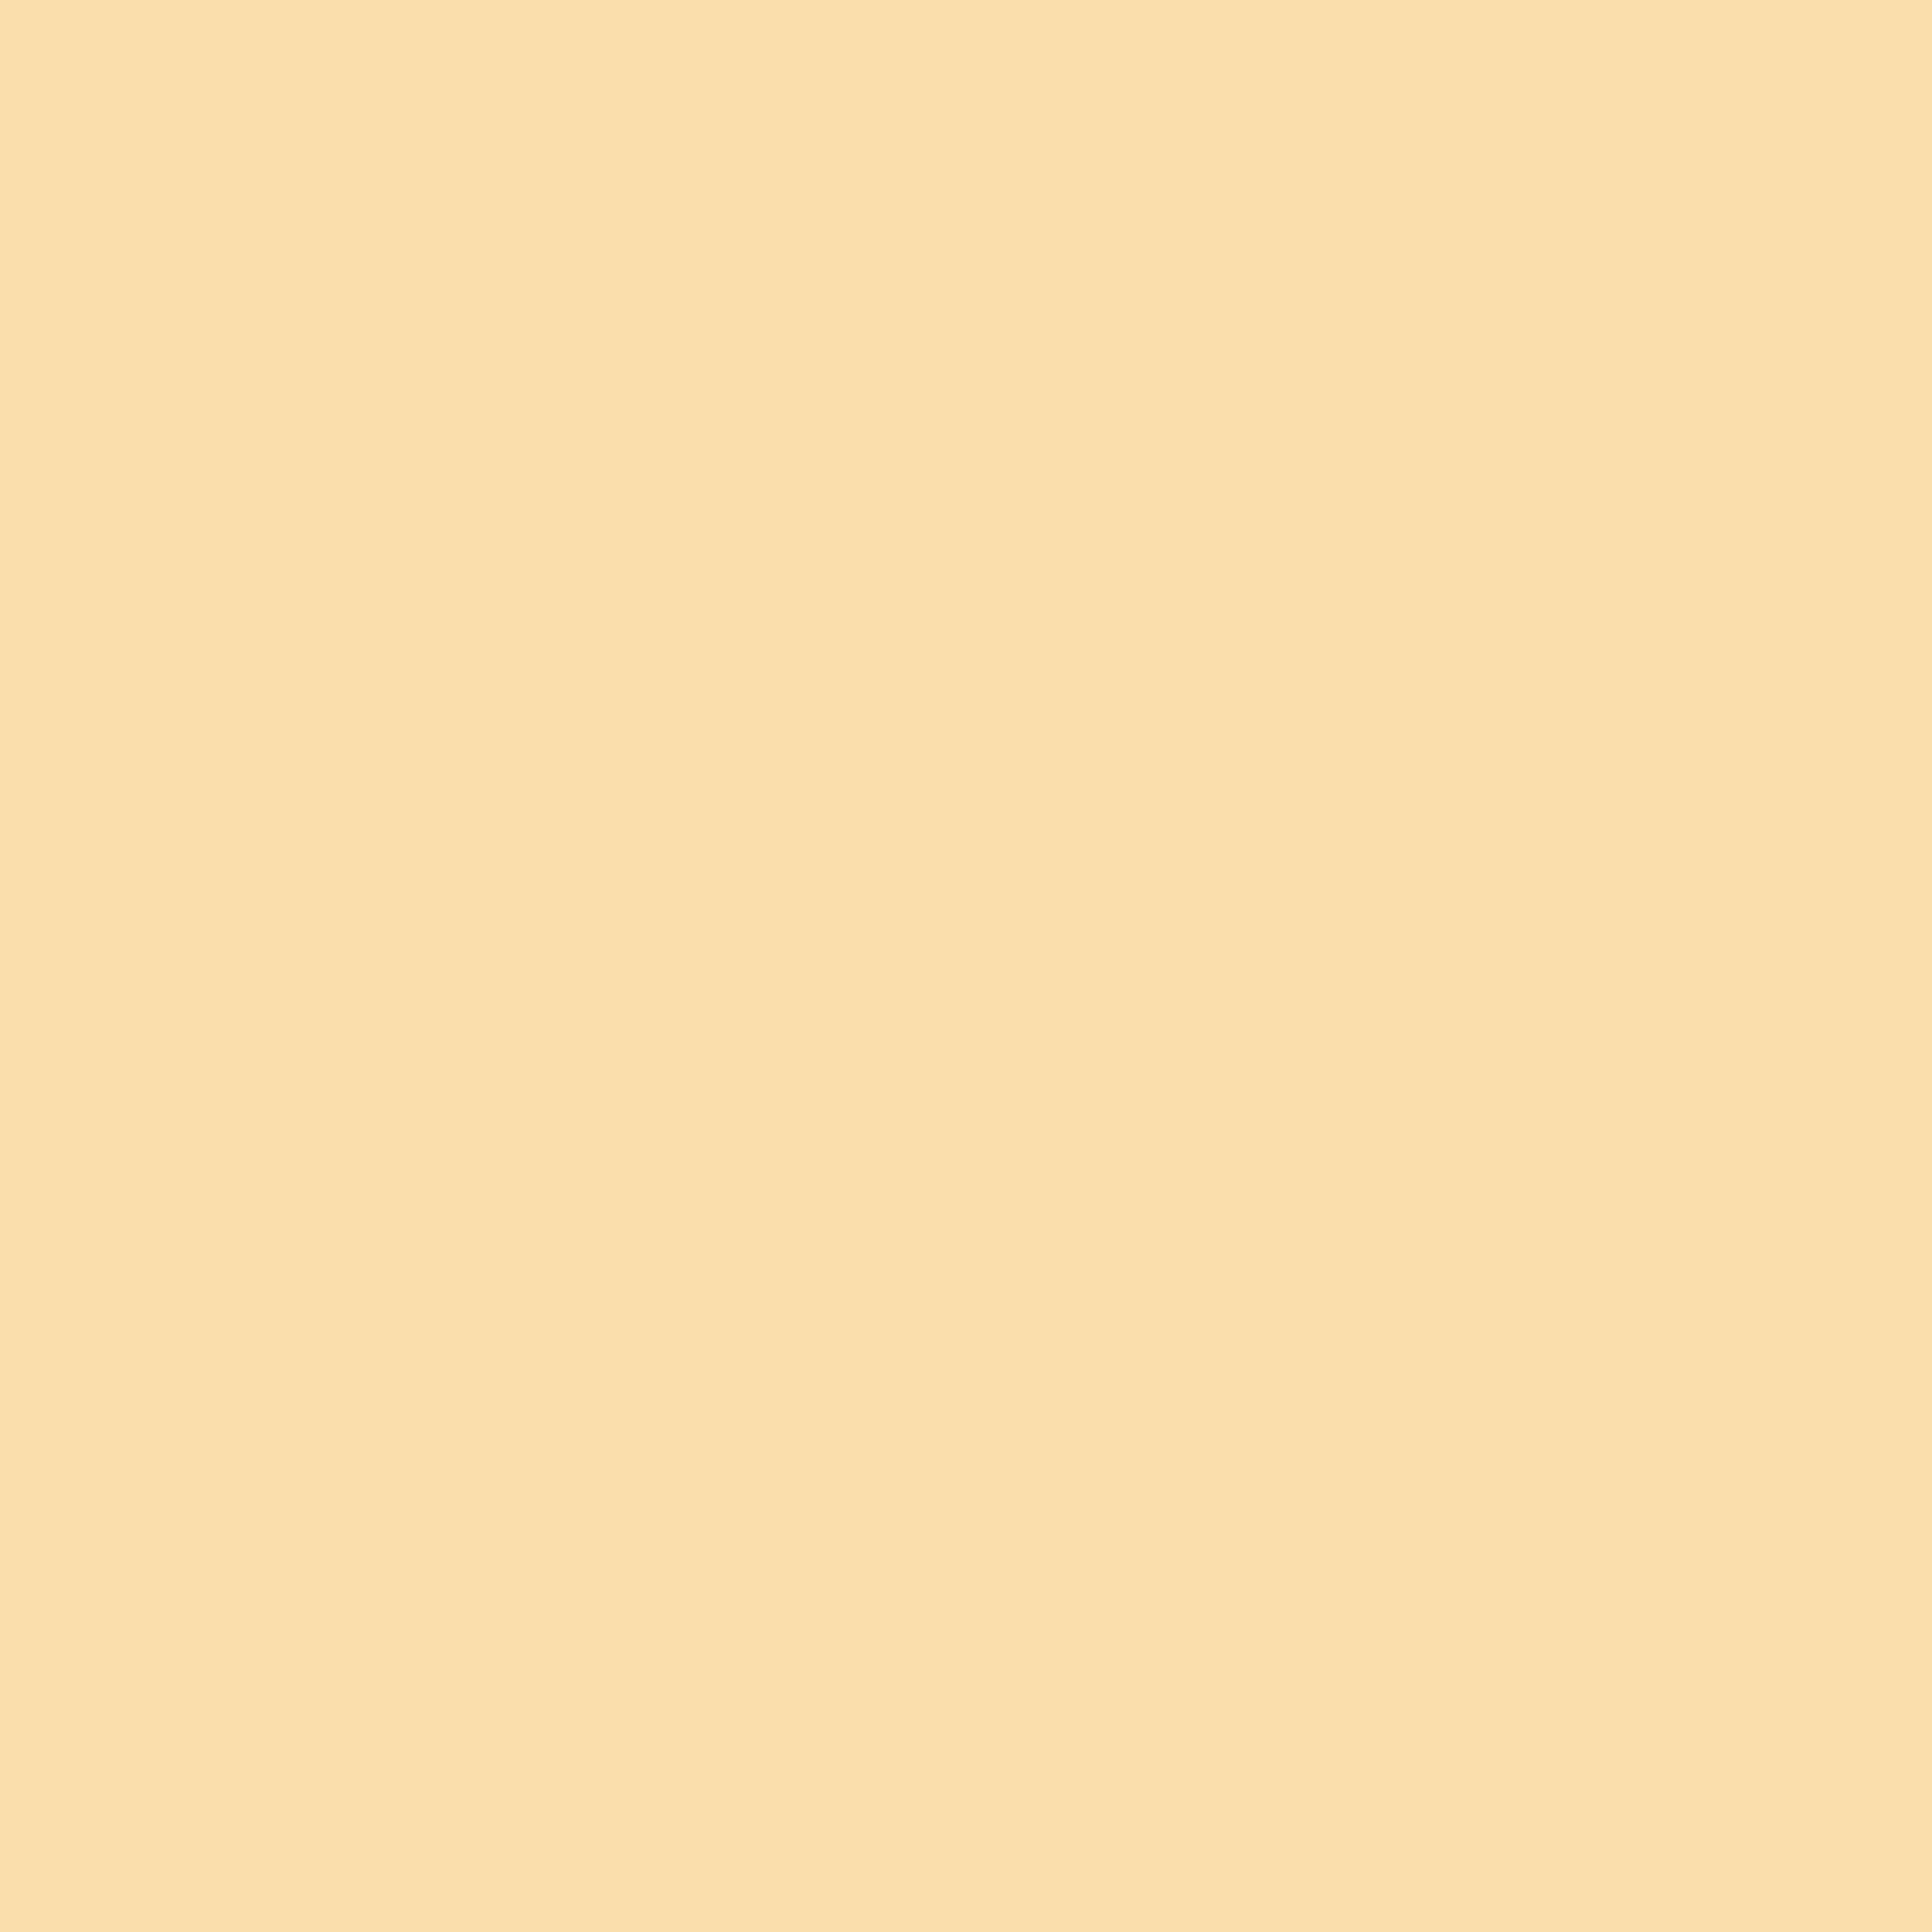 2048x2048 Peach-yellow Solid Color Background